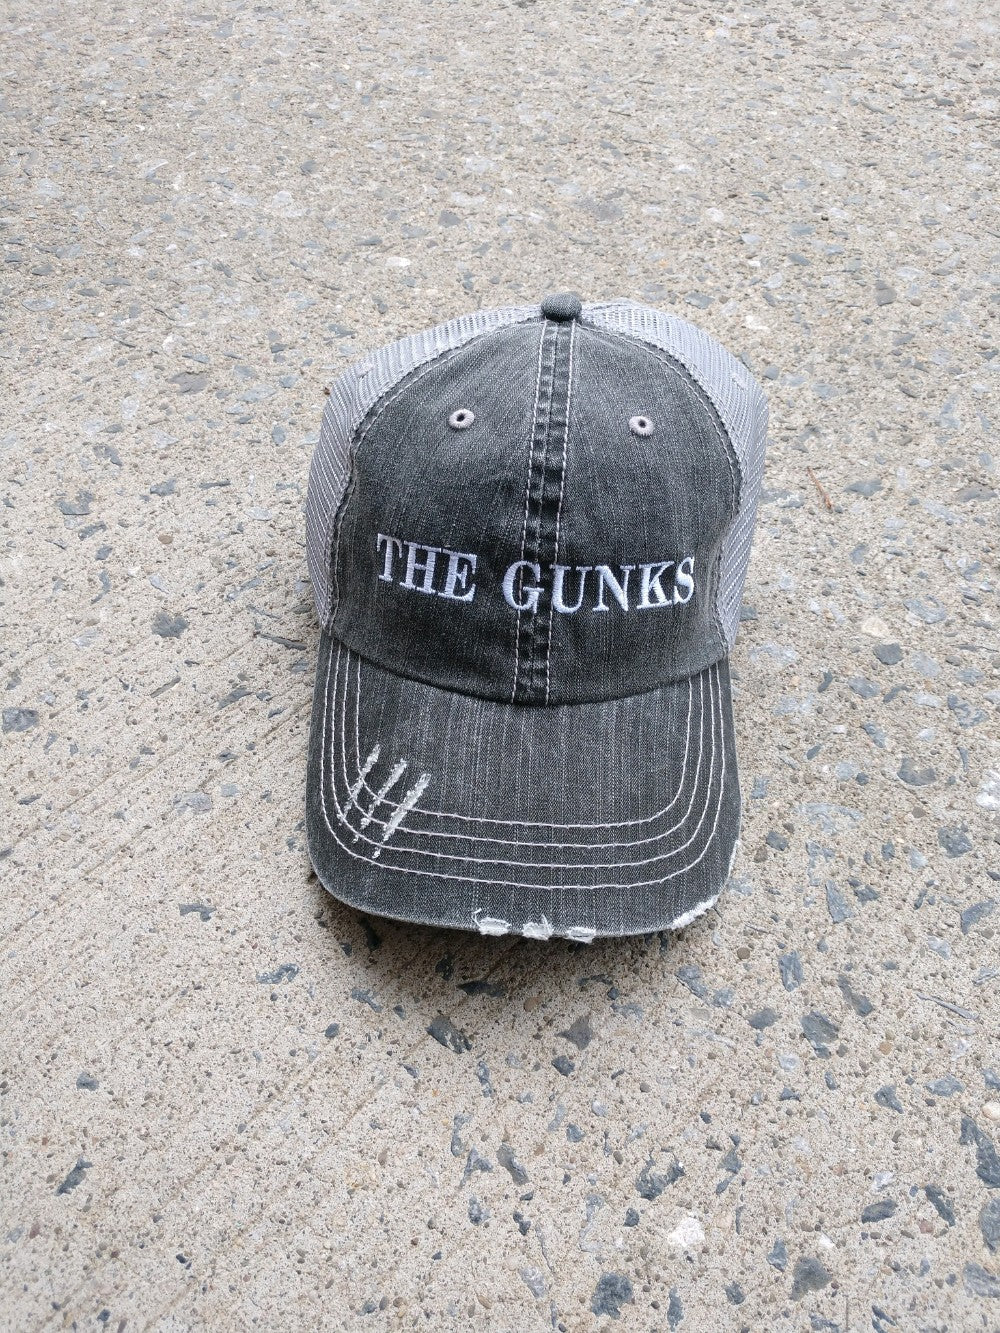 The Gunks Hat